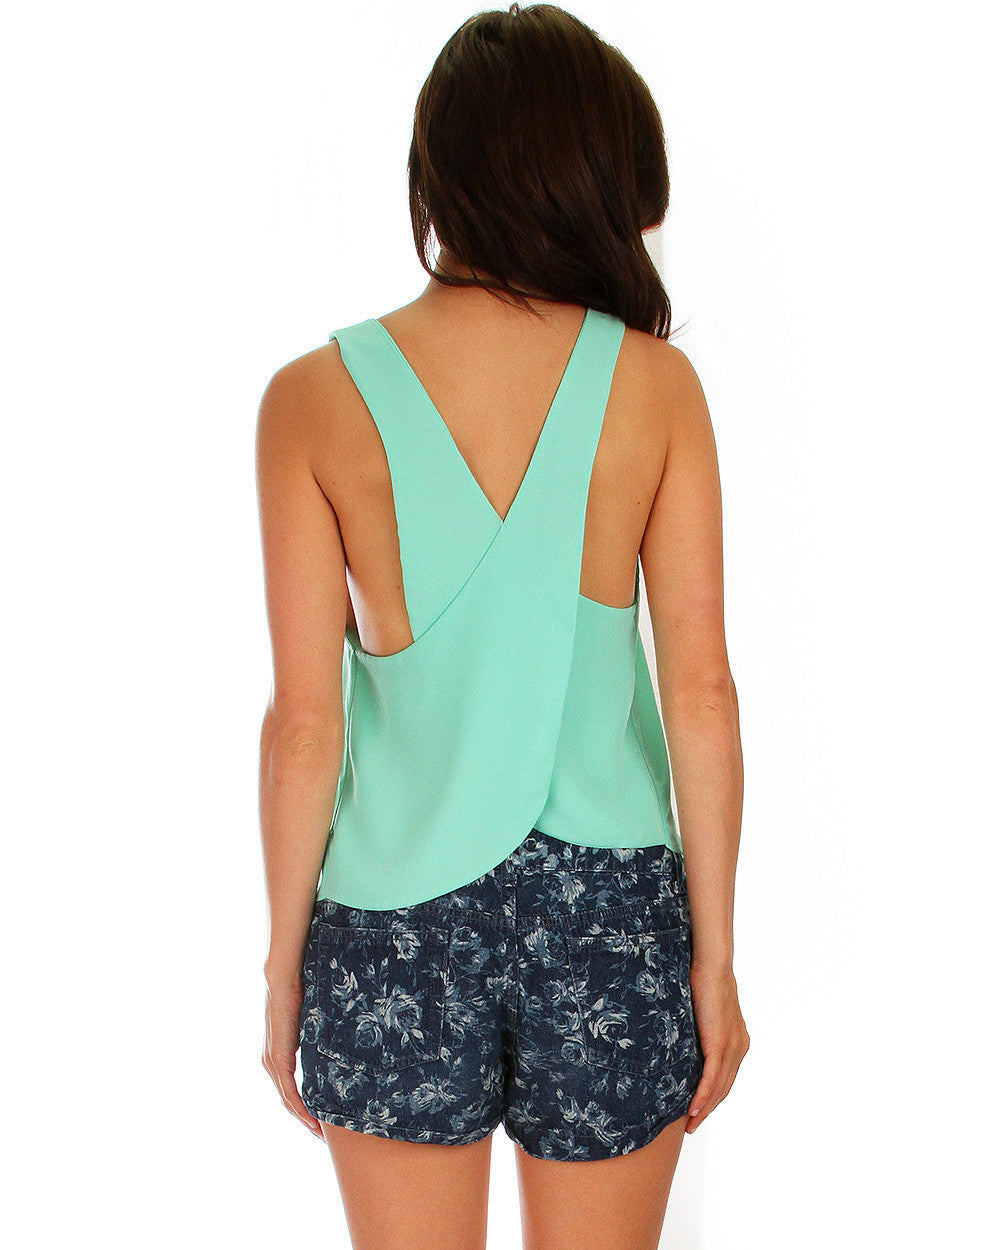 Totally Crossed Out Tank Top In Mint